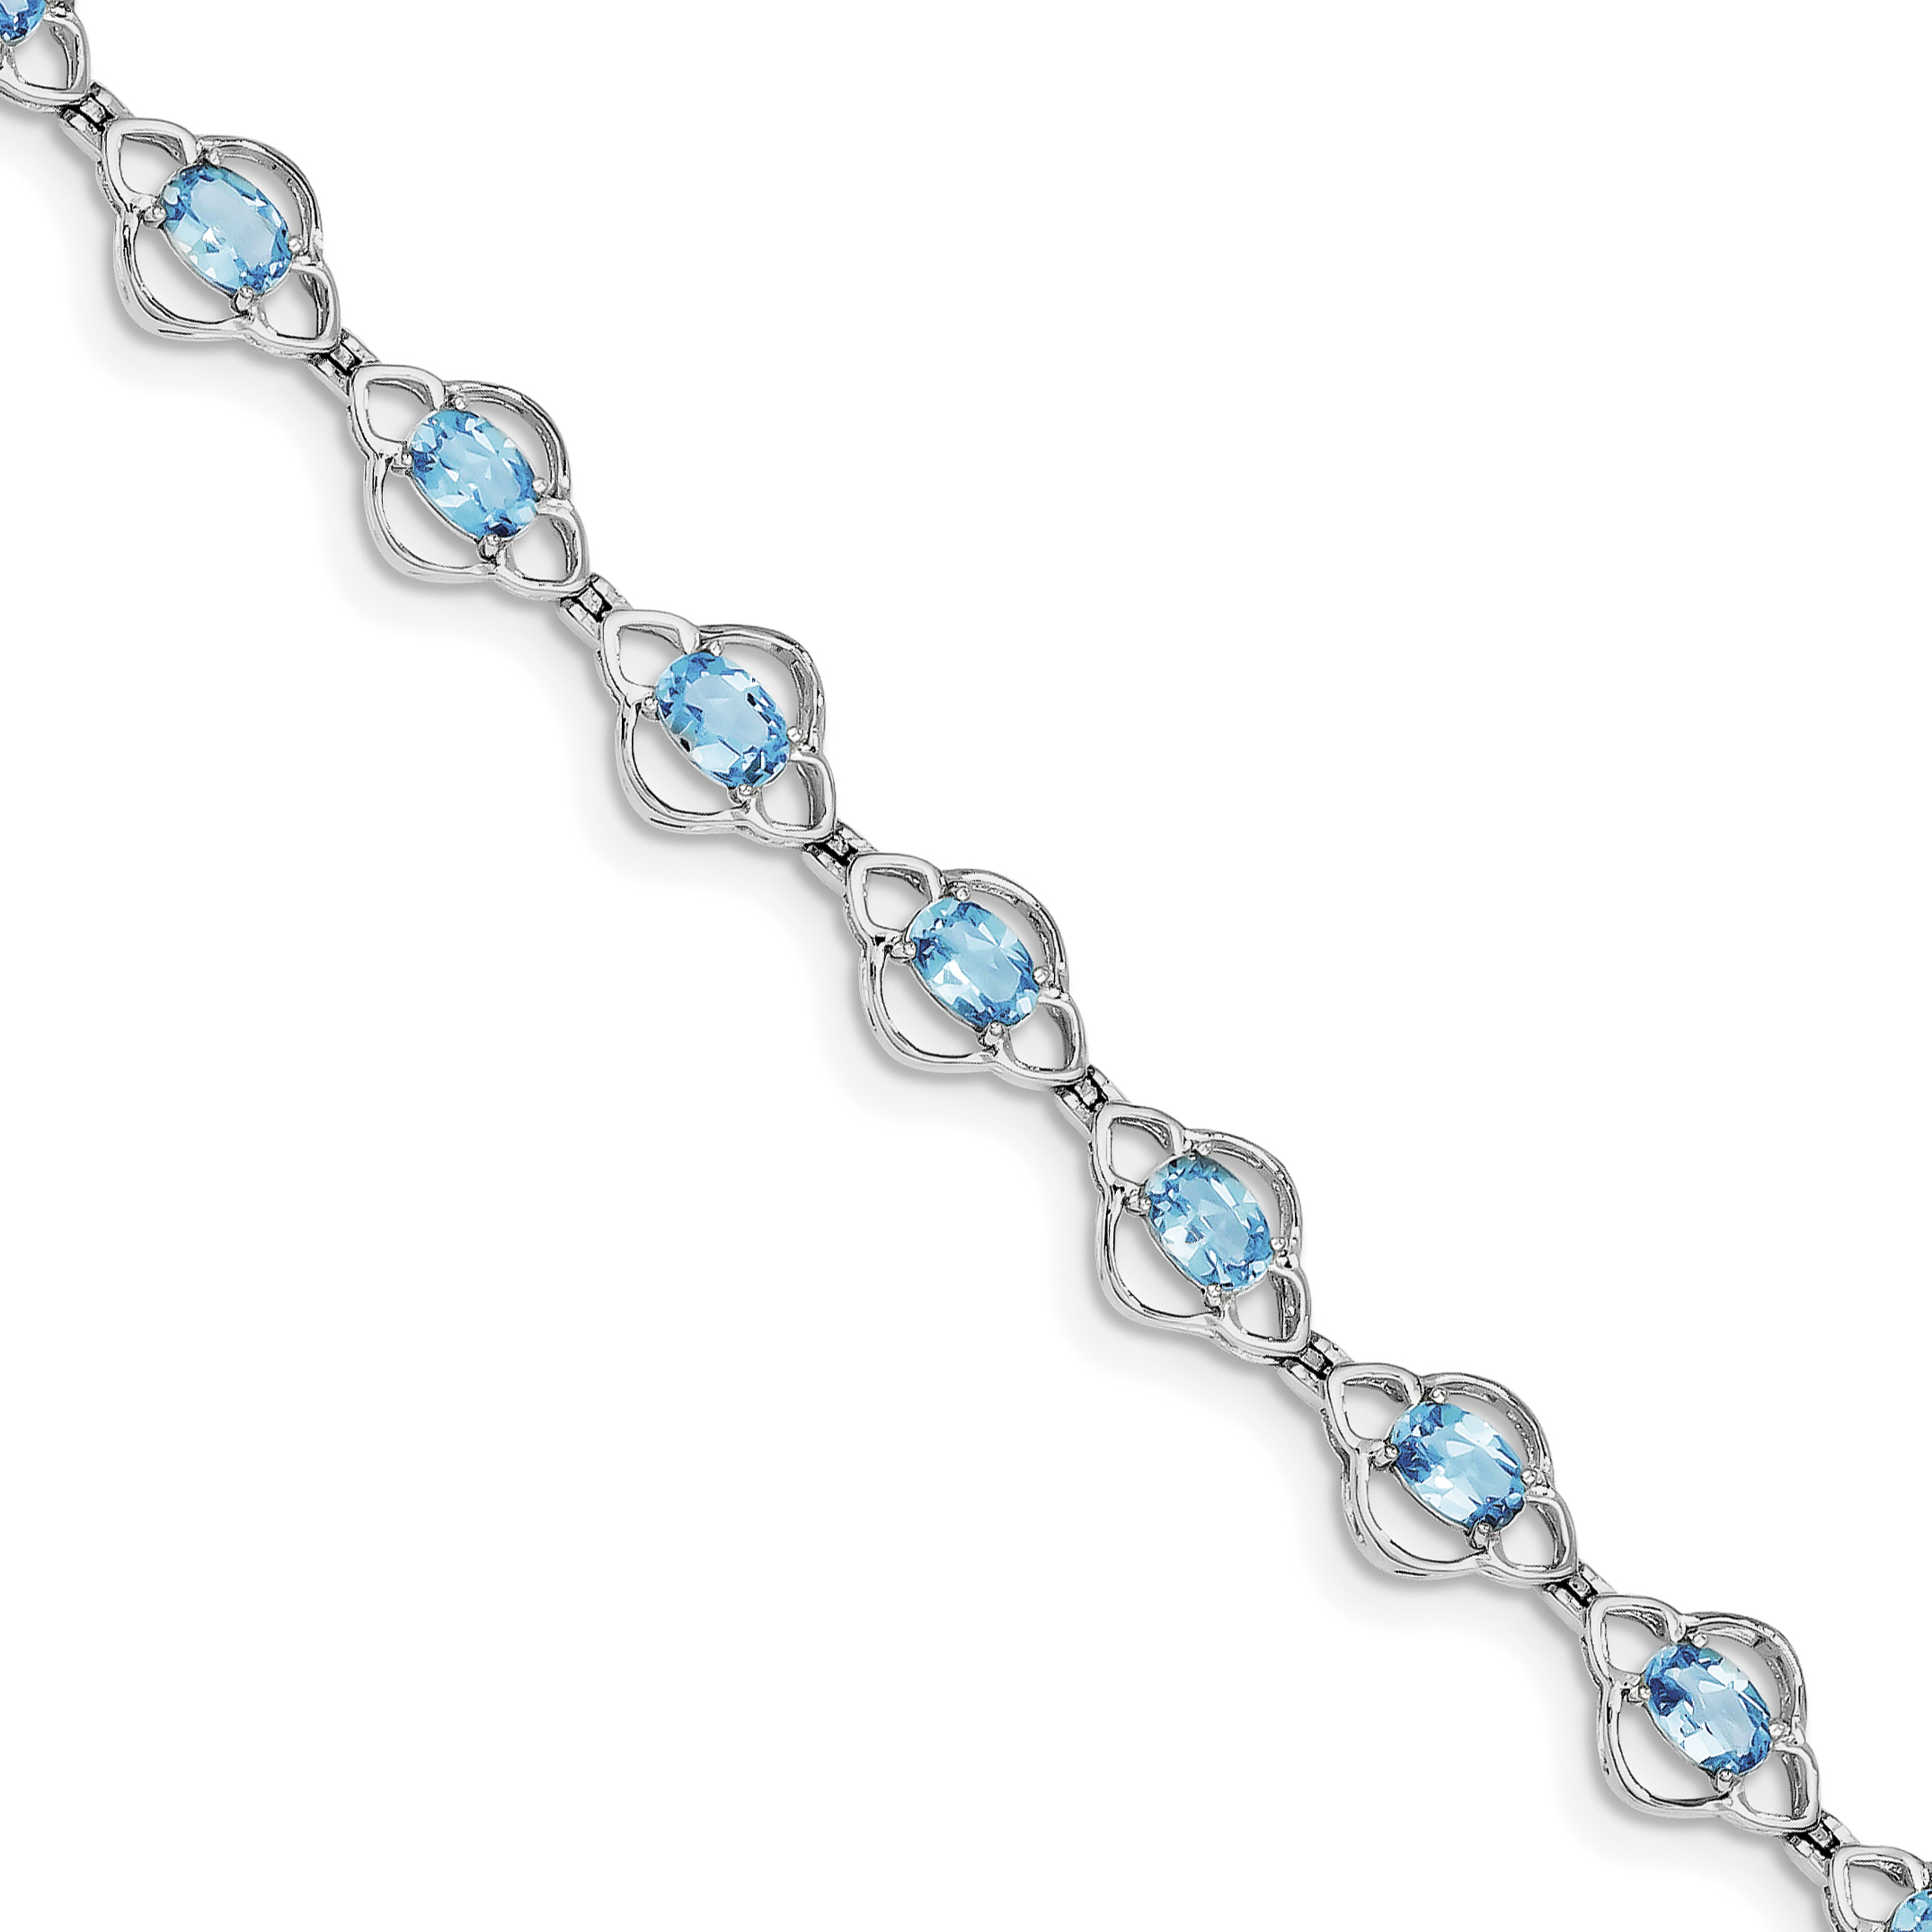 Roy Rose Jewelry Sterling Silver Light Swiss Blue Topaz Bracelet ~ Length 7'' inches by